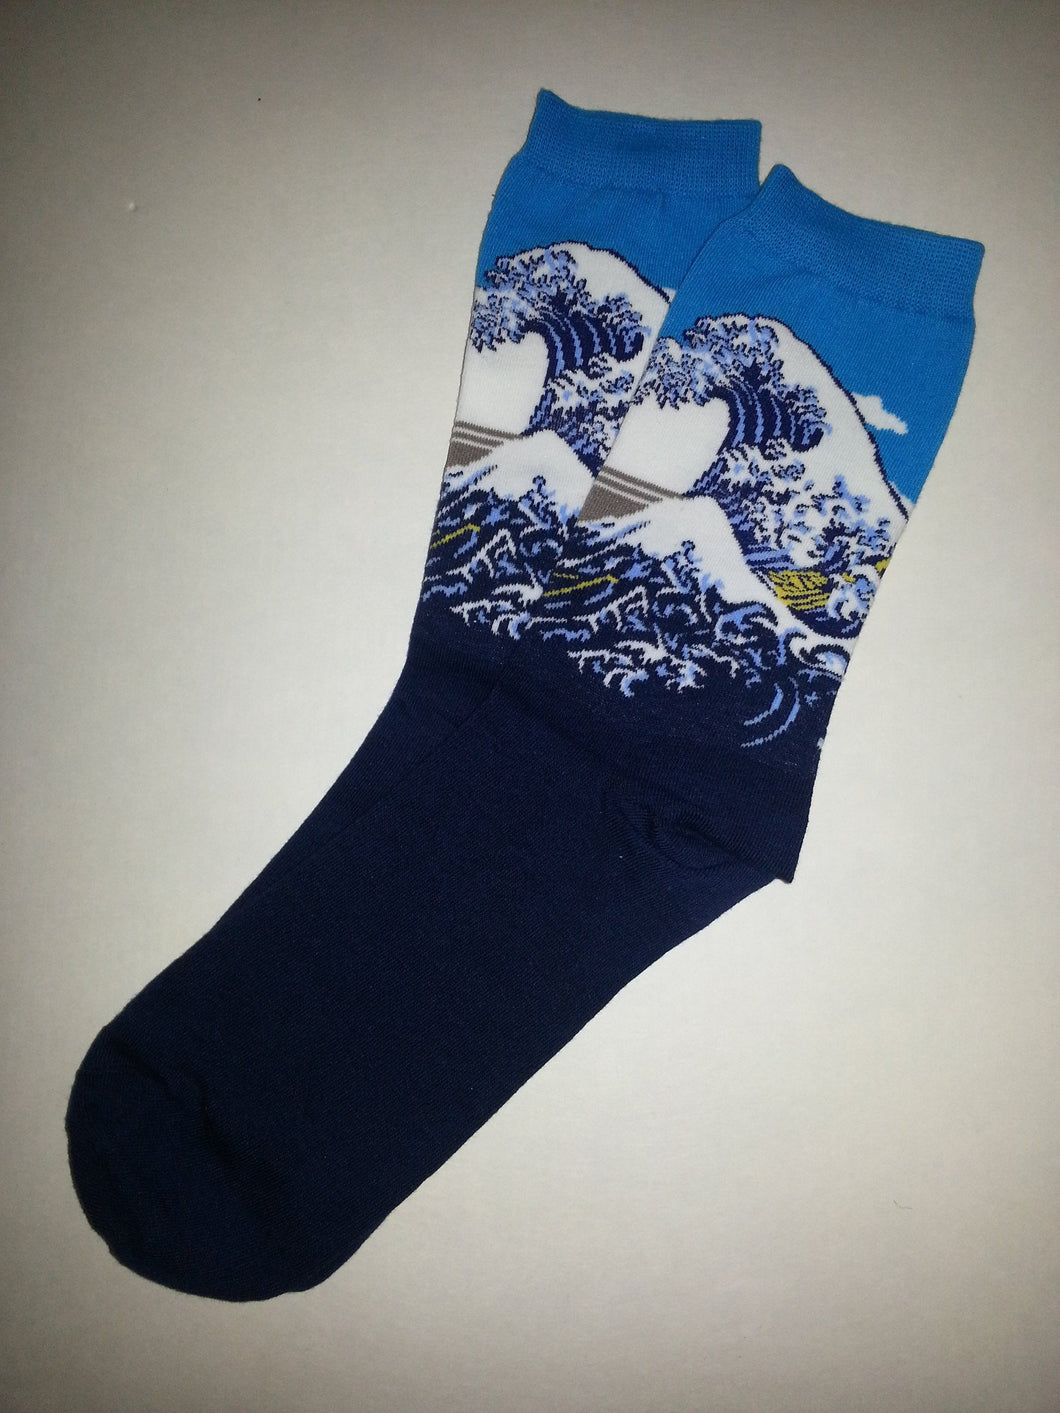 The Great Wave by Hokusai Crew Socks